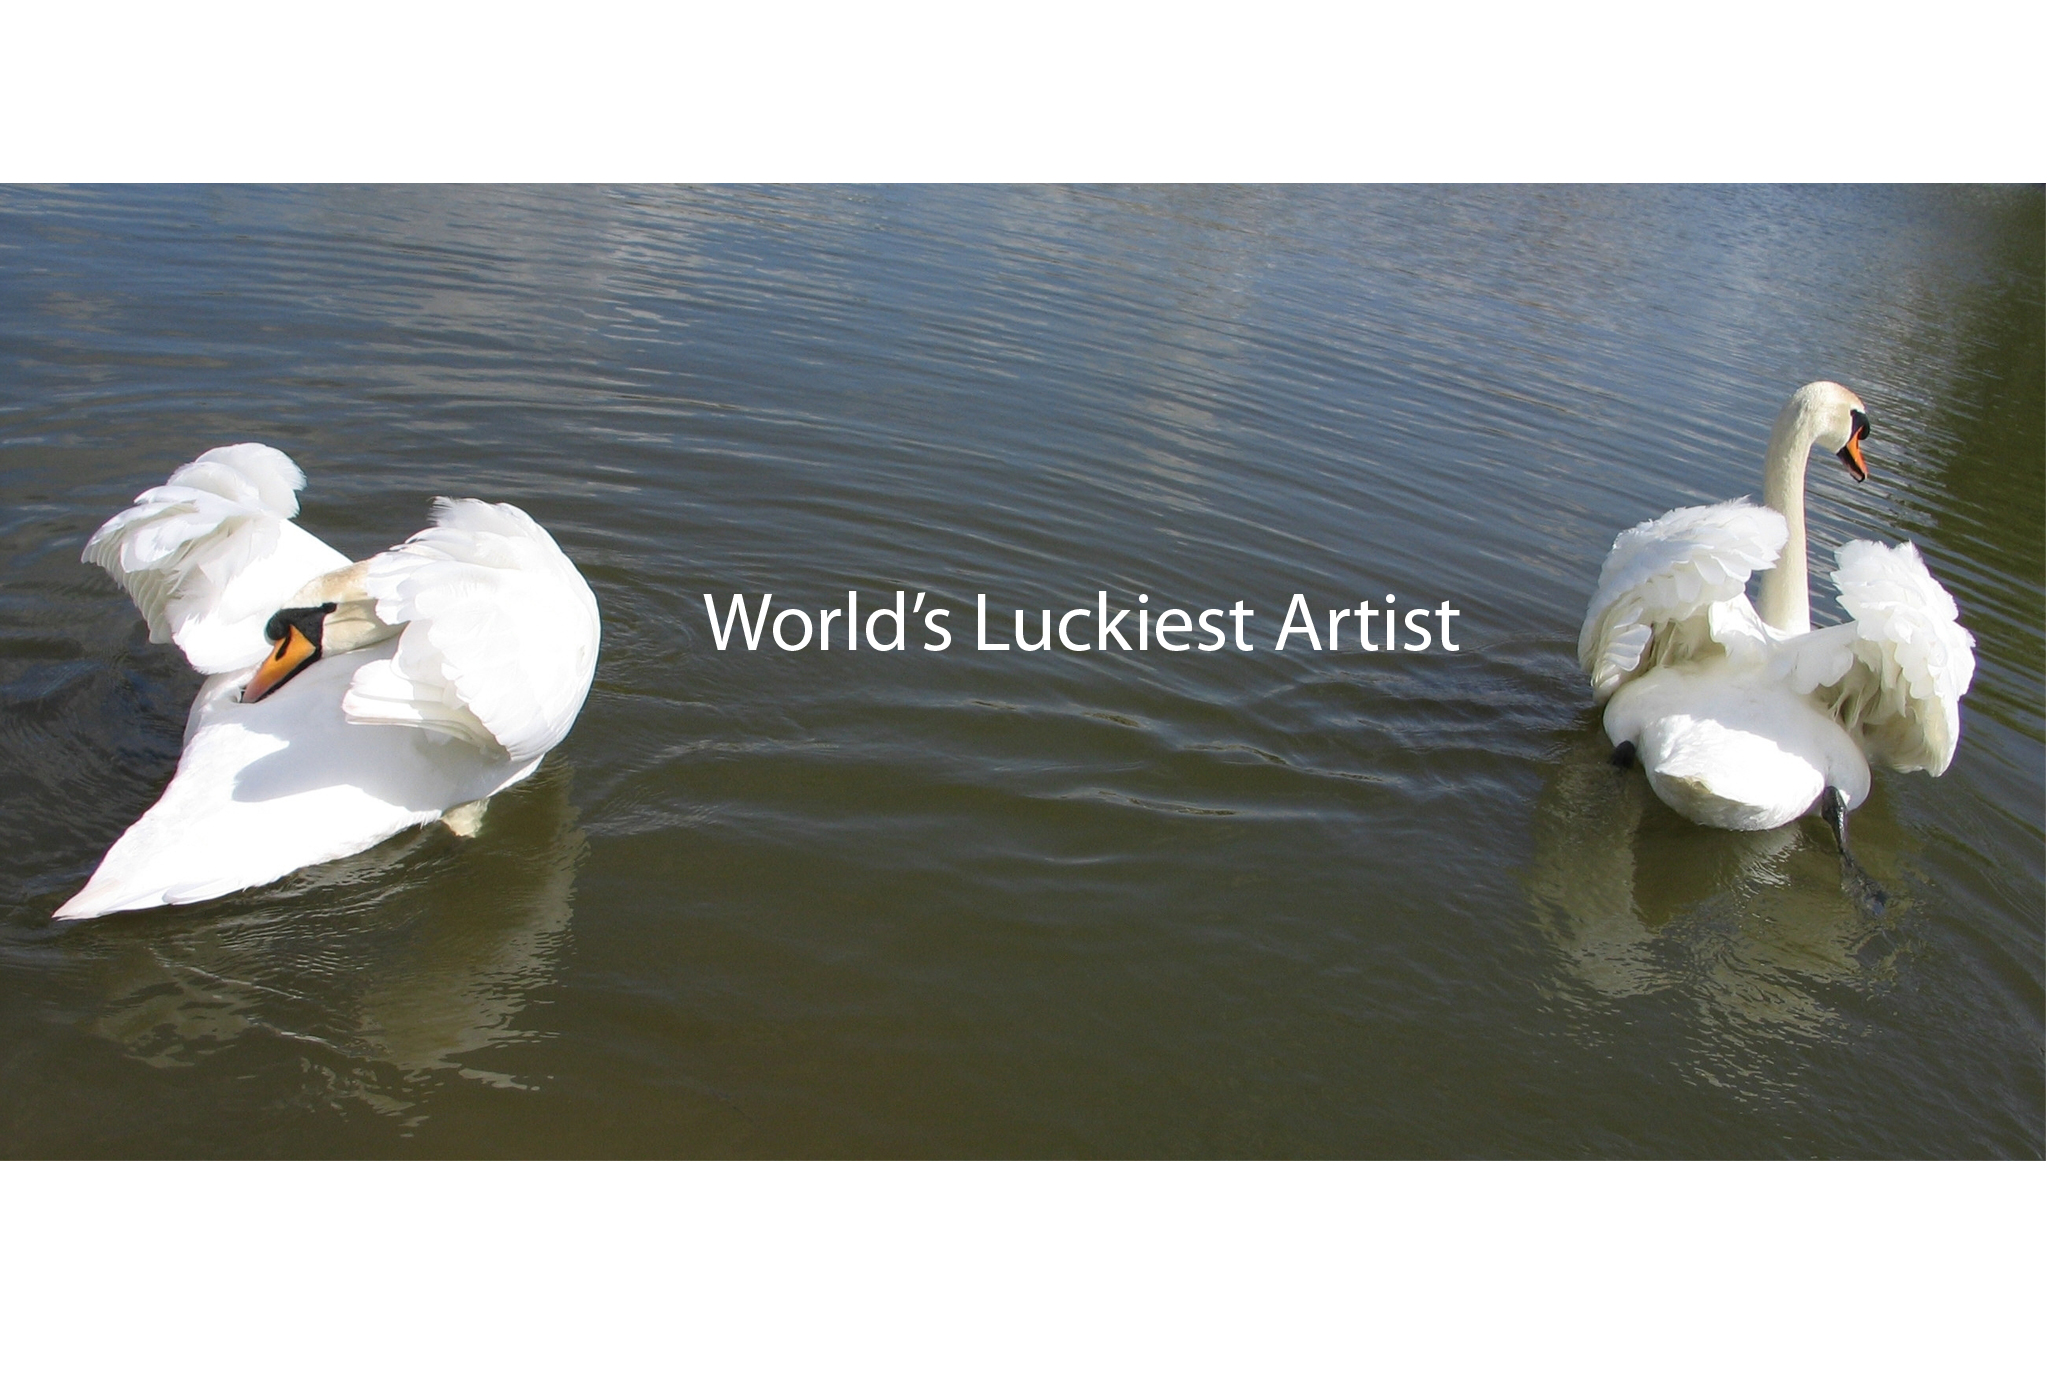 World's Luckiest Artist